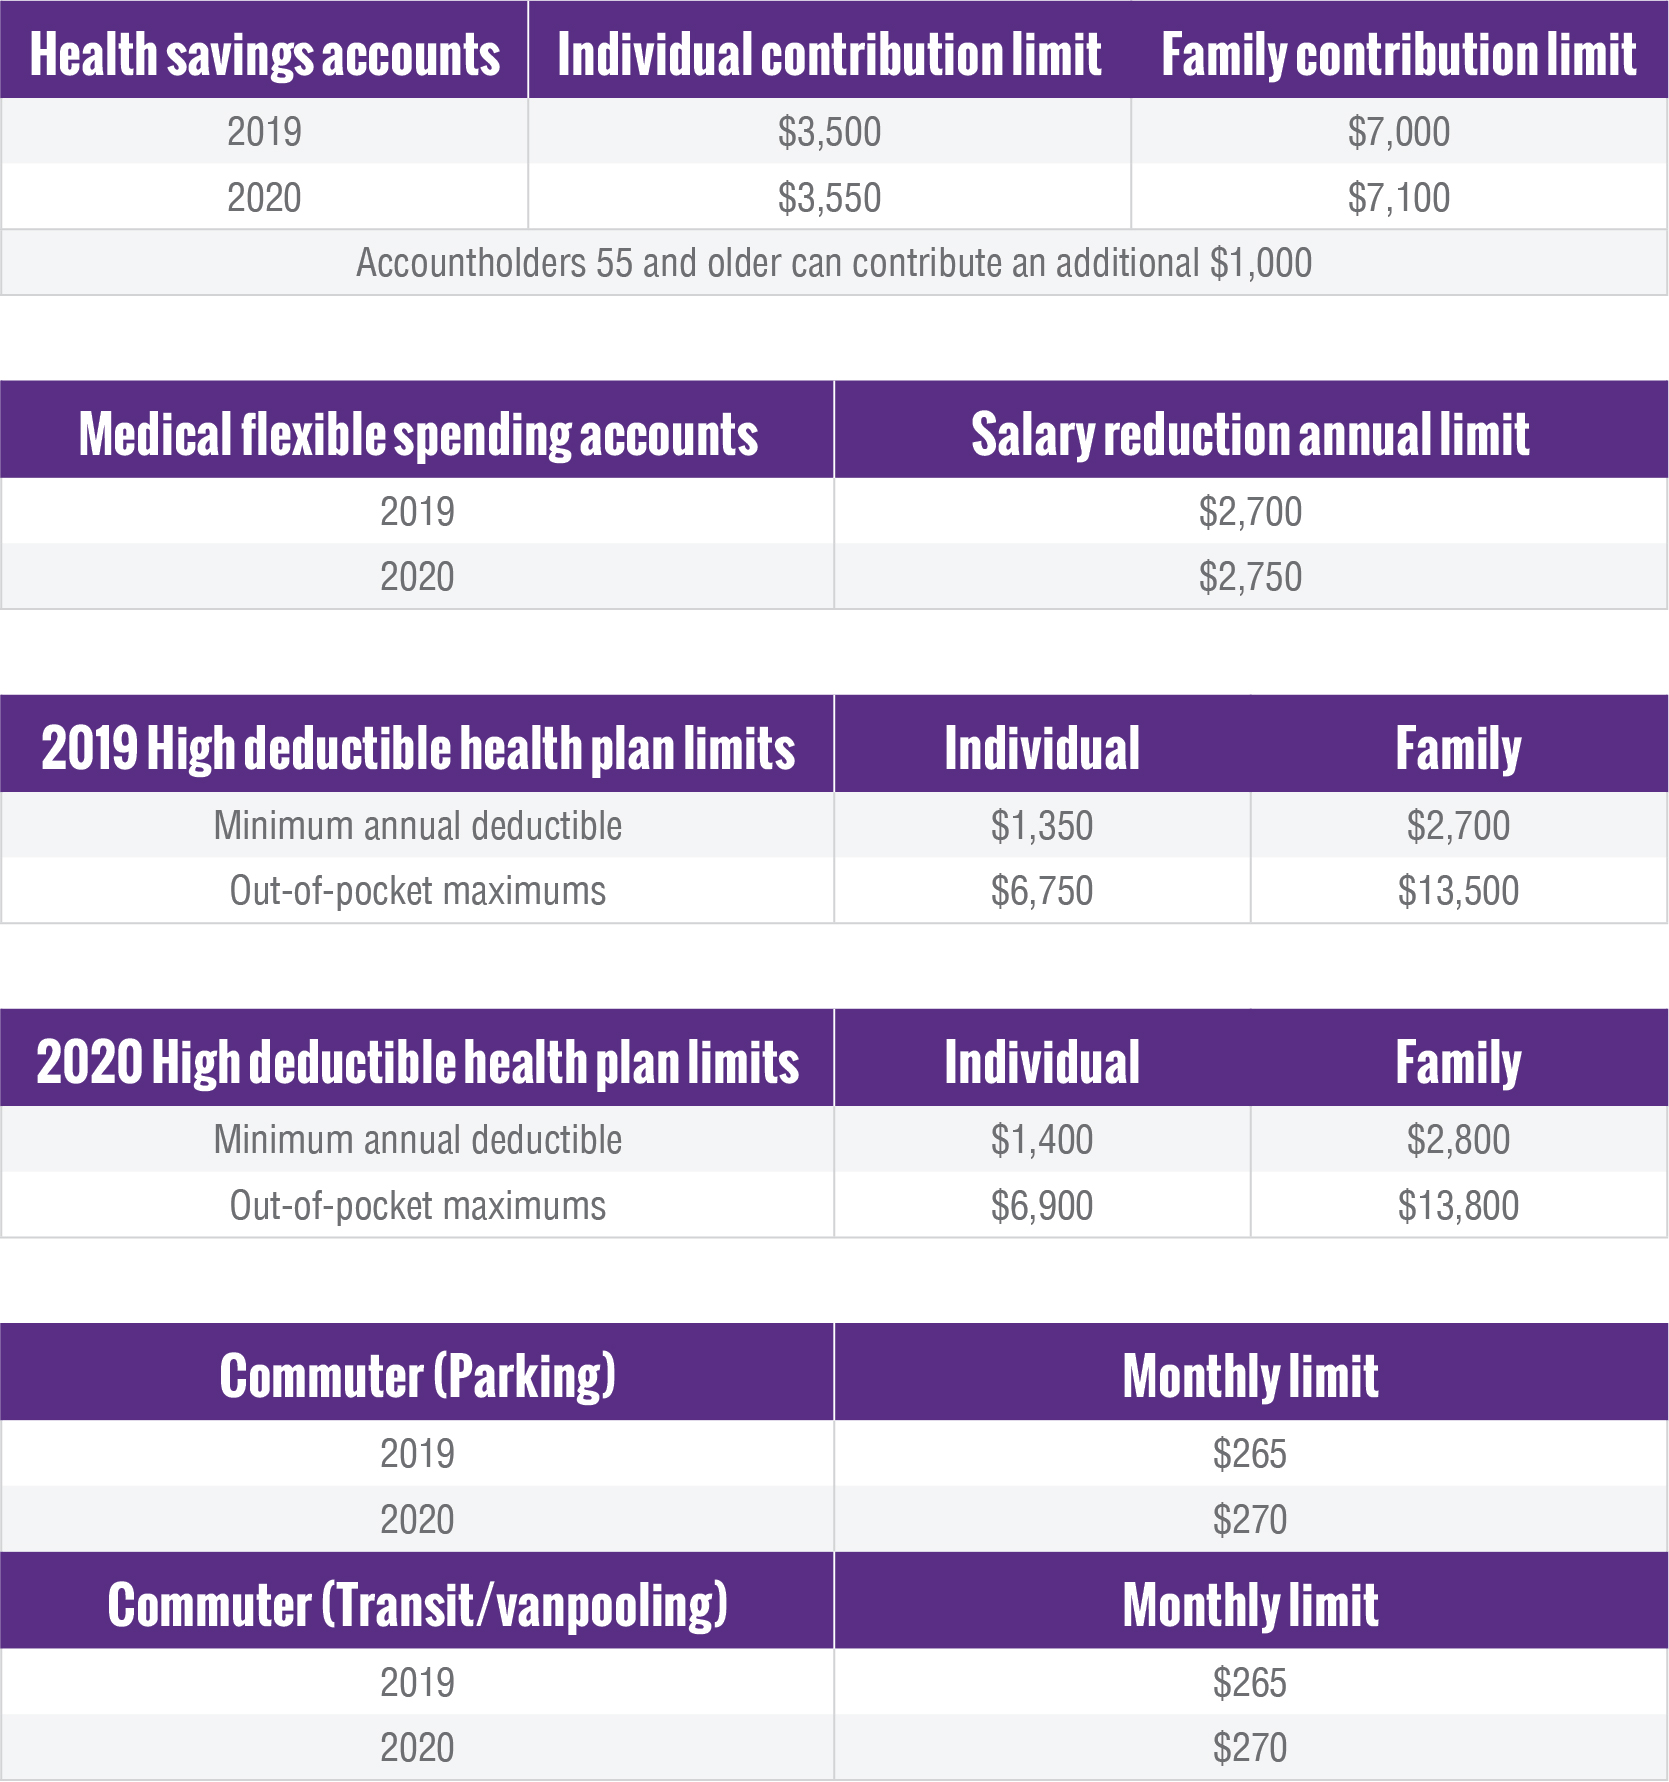 Health and other benefit accounts[1]